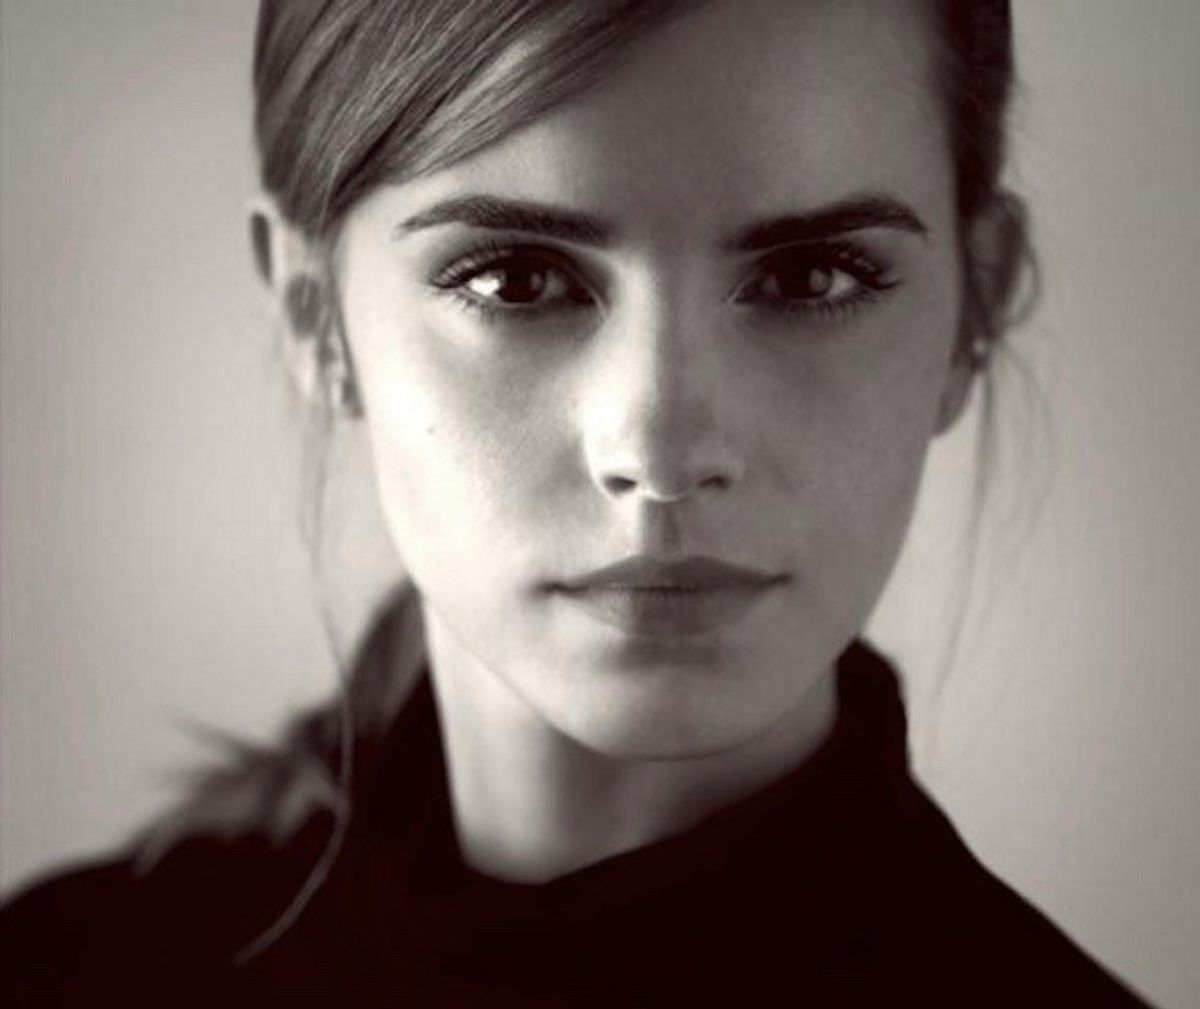 9 Reasons Why Emma Watson Should Be Everyone's Role Model